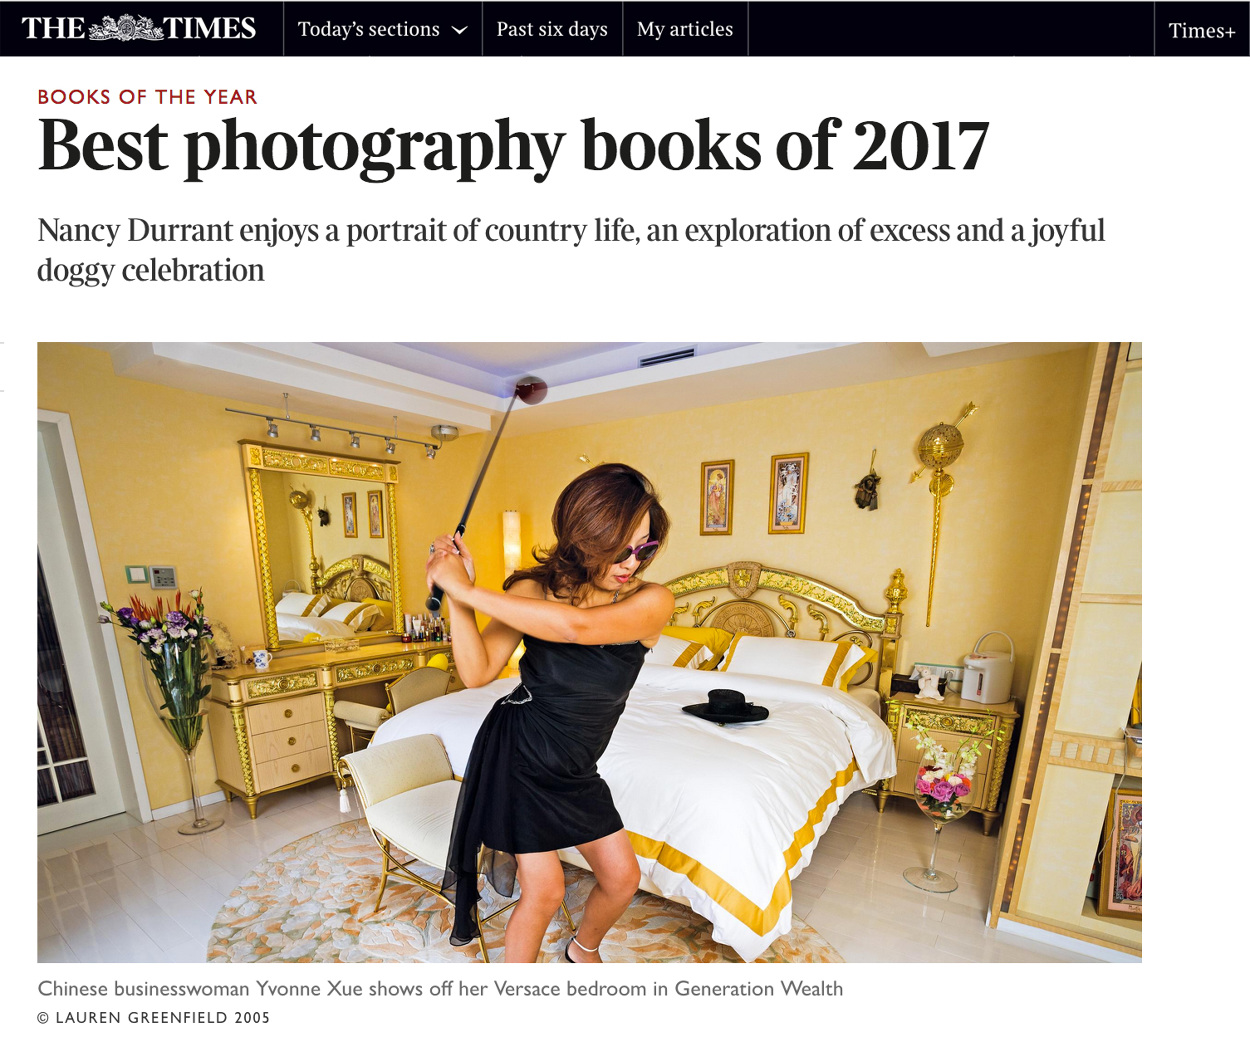 The Times awards Lauren Greenfield's GENERATION WEALTH #1 of